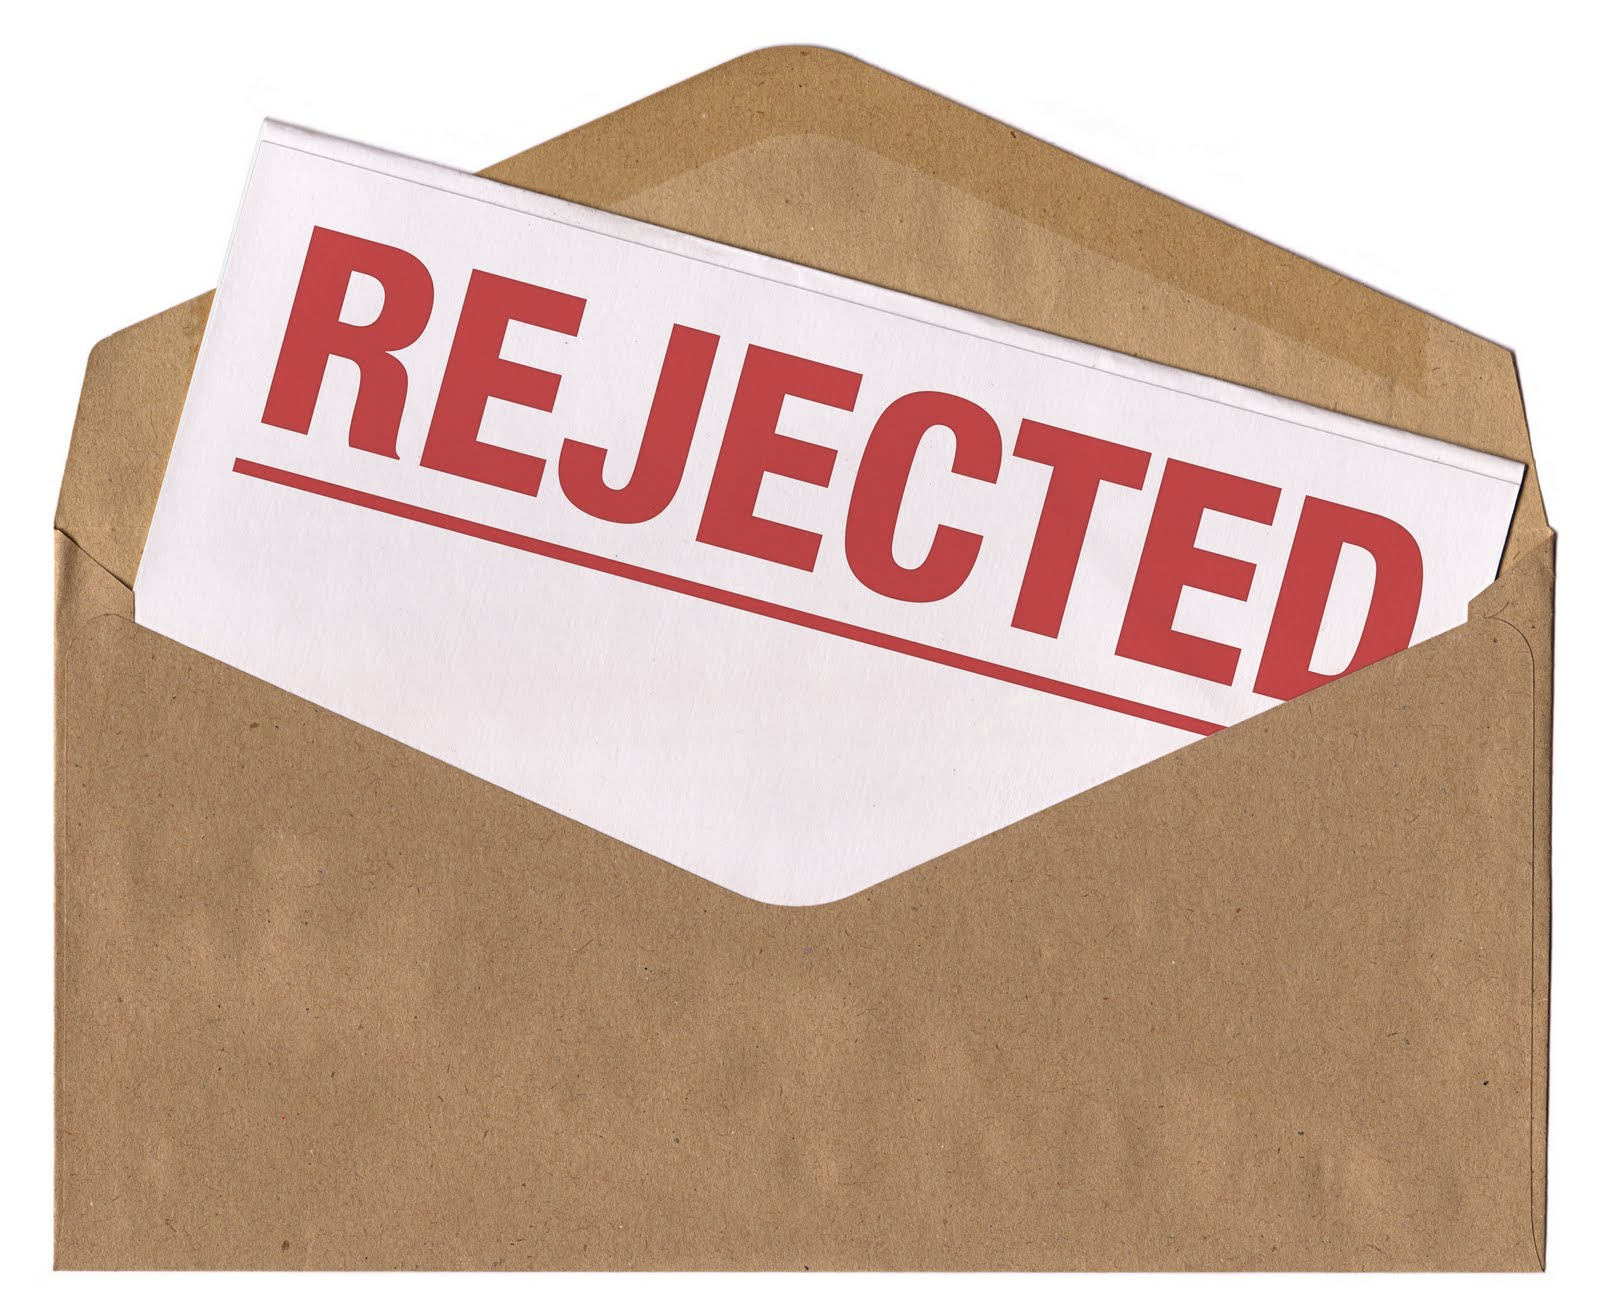 What's in the envelope? REJECTION!